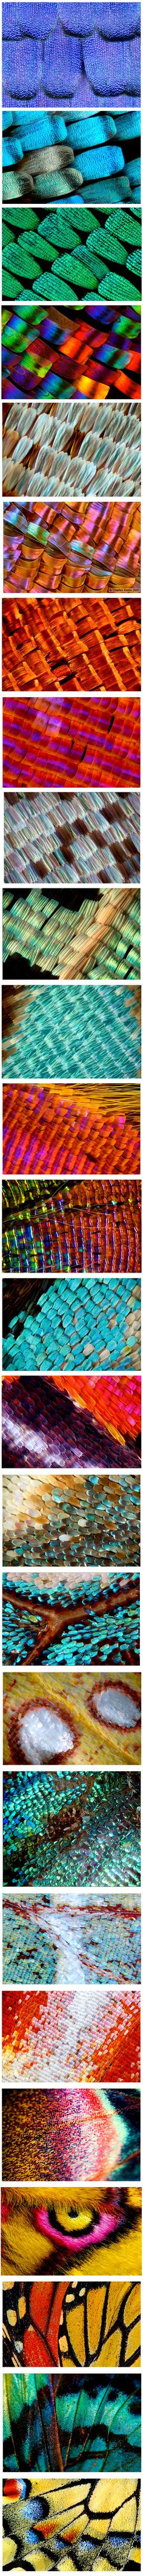 Macro Butterfly Wings (3-20x)